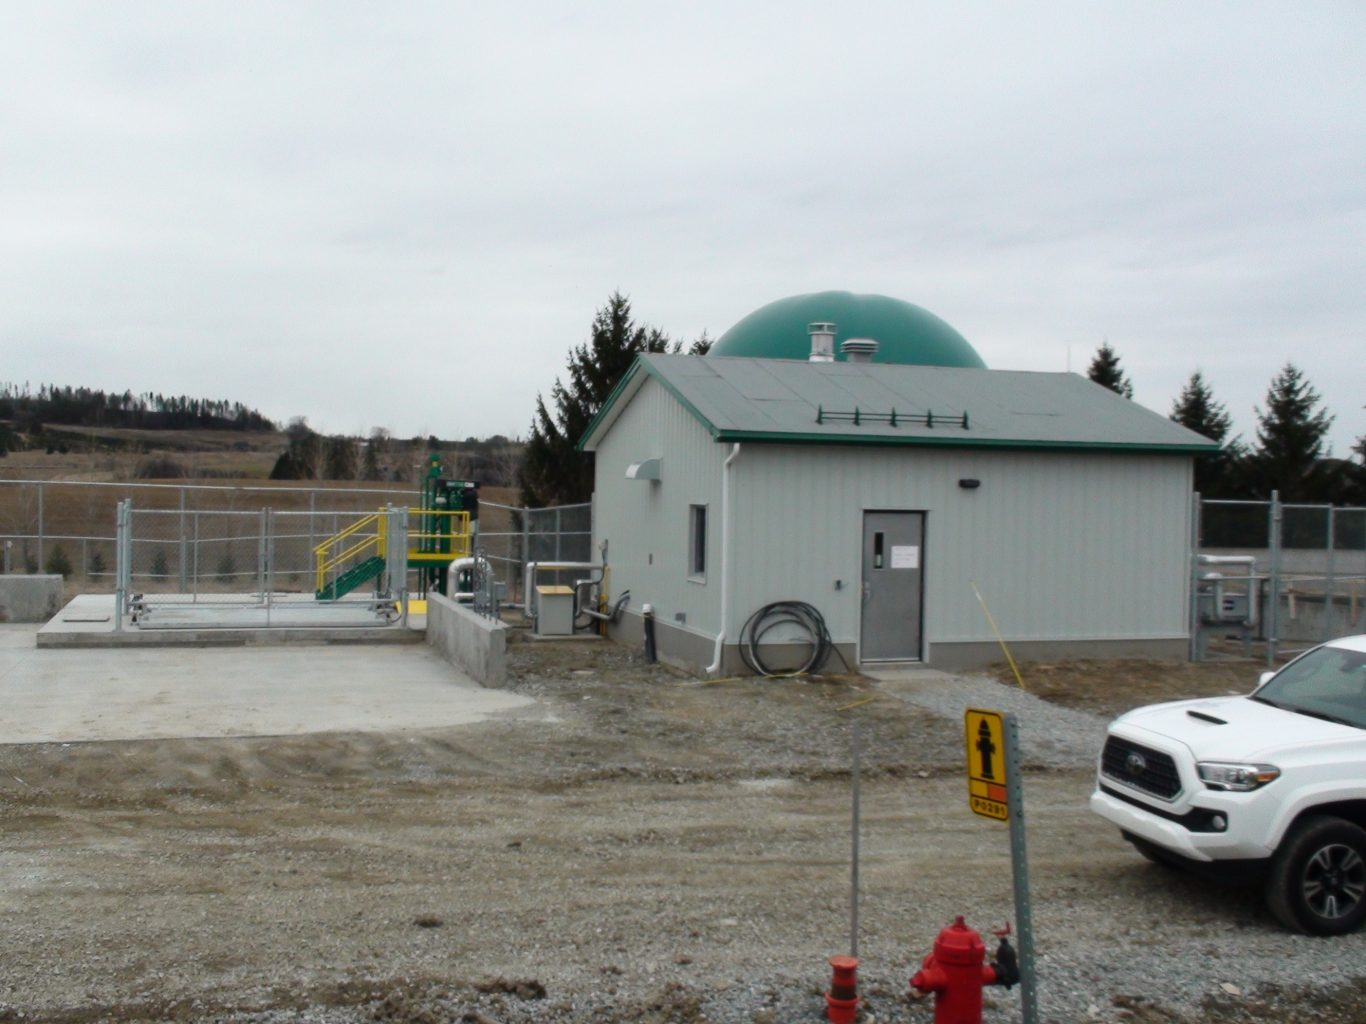 Bahler Biogas- Facilities small scale anaerobic digestion agricultural waste project